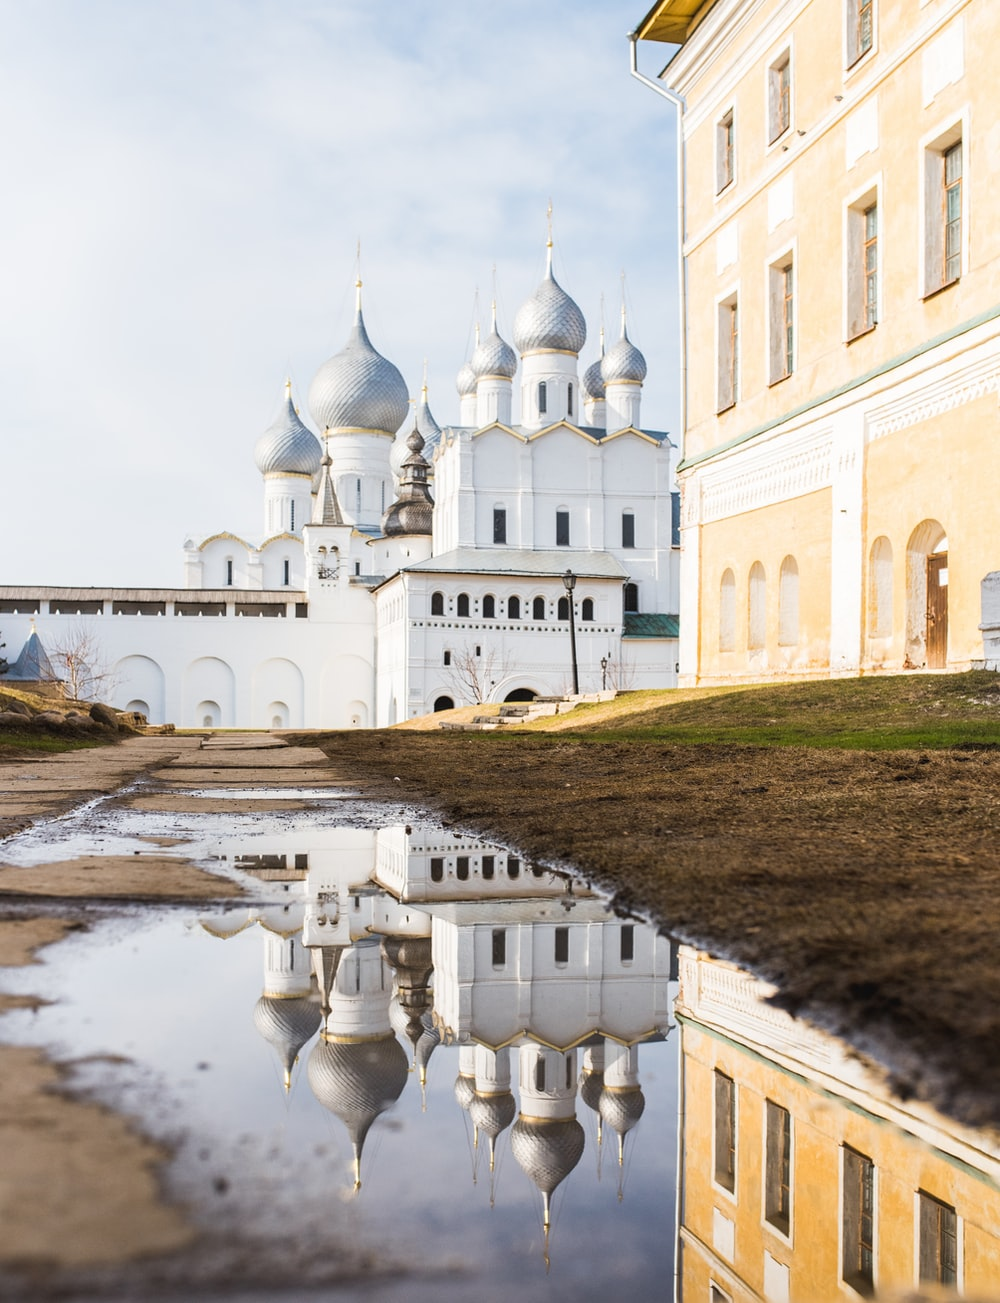 white mosque near the beige 3-storey building